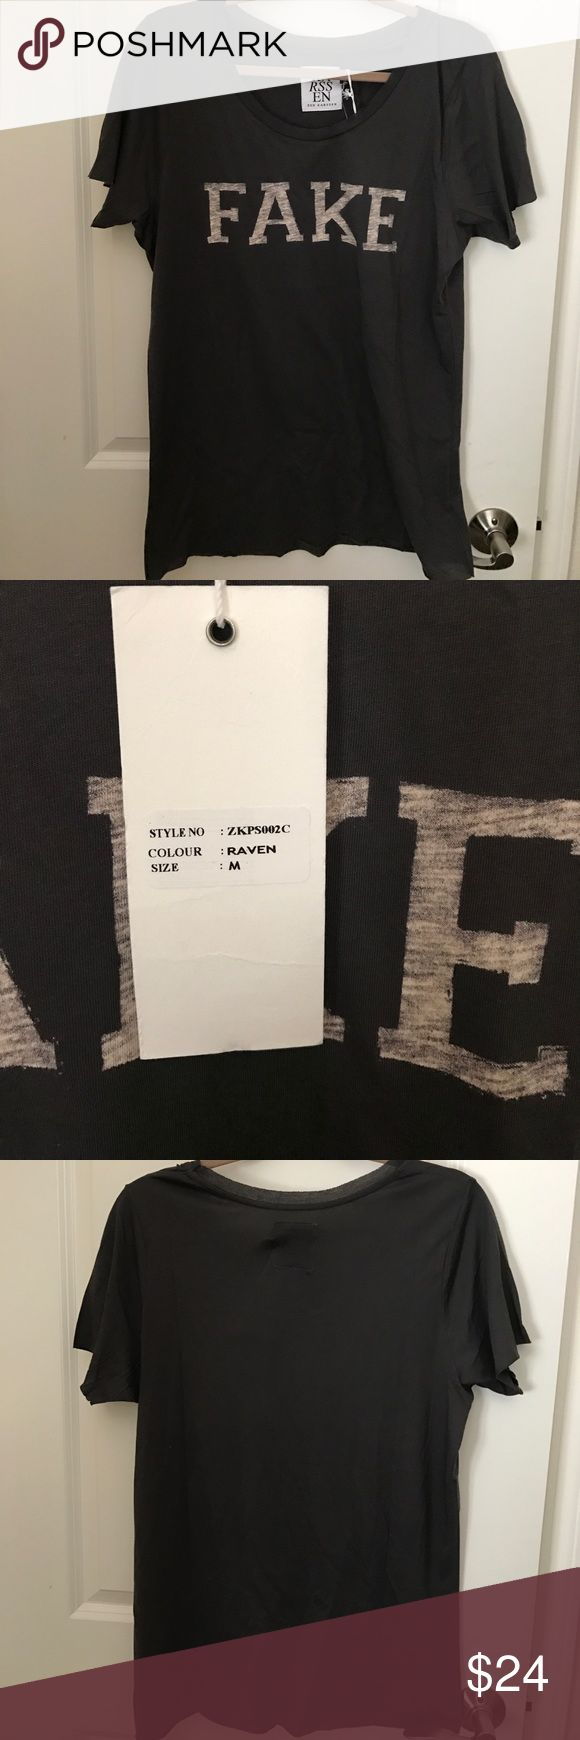 New Zoe Karssen Fake  Tee  M Super cute! Brand new with tags. Size medium. Please let me know if you have any questions  Zoe Karssen Tops Tees - Short Sleeve